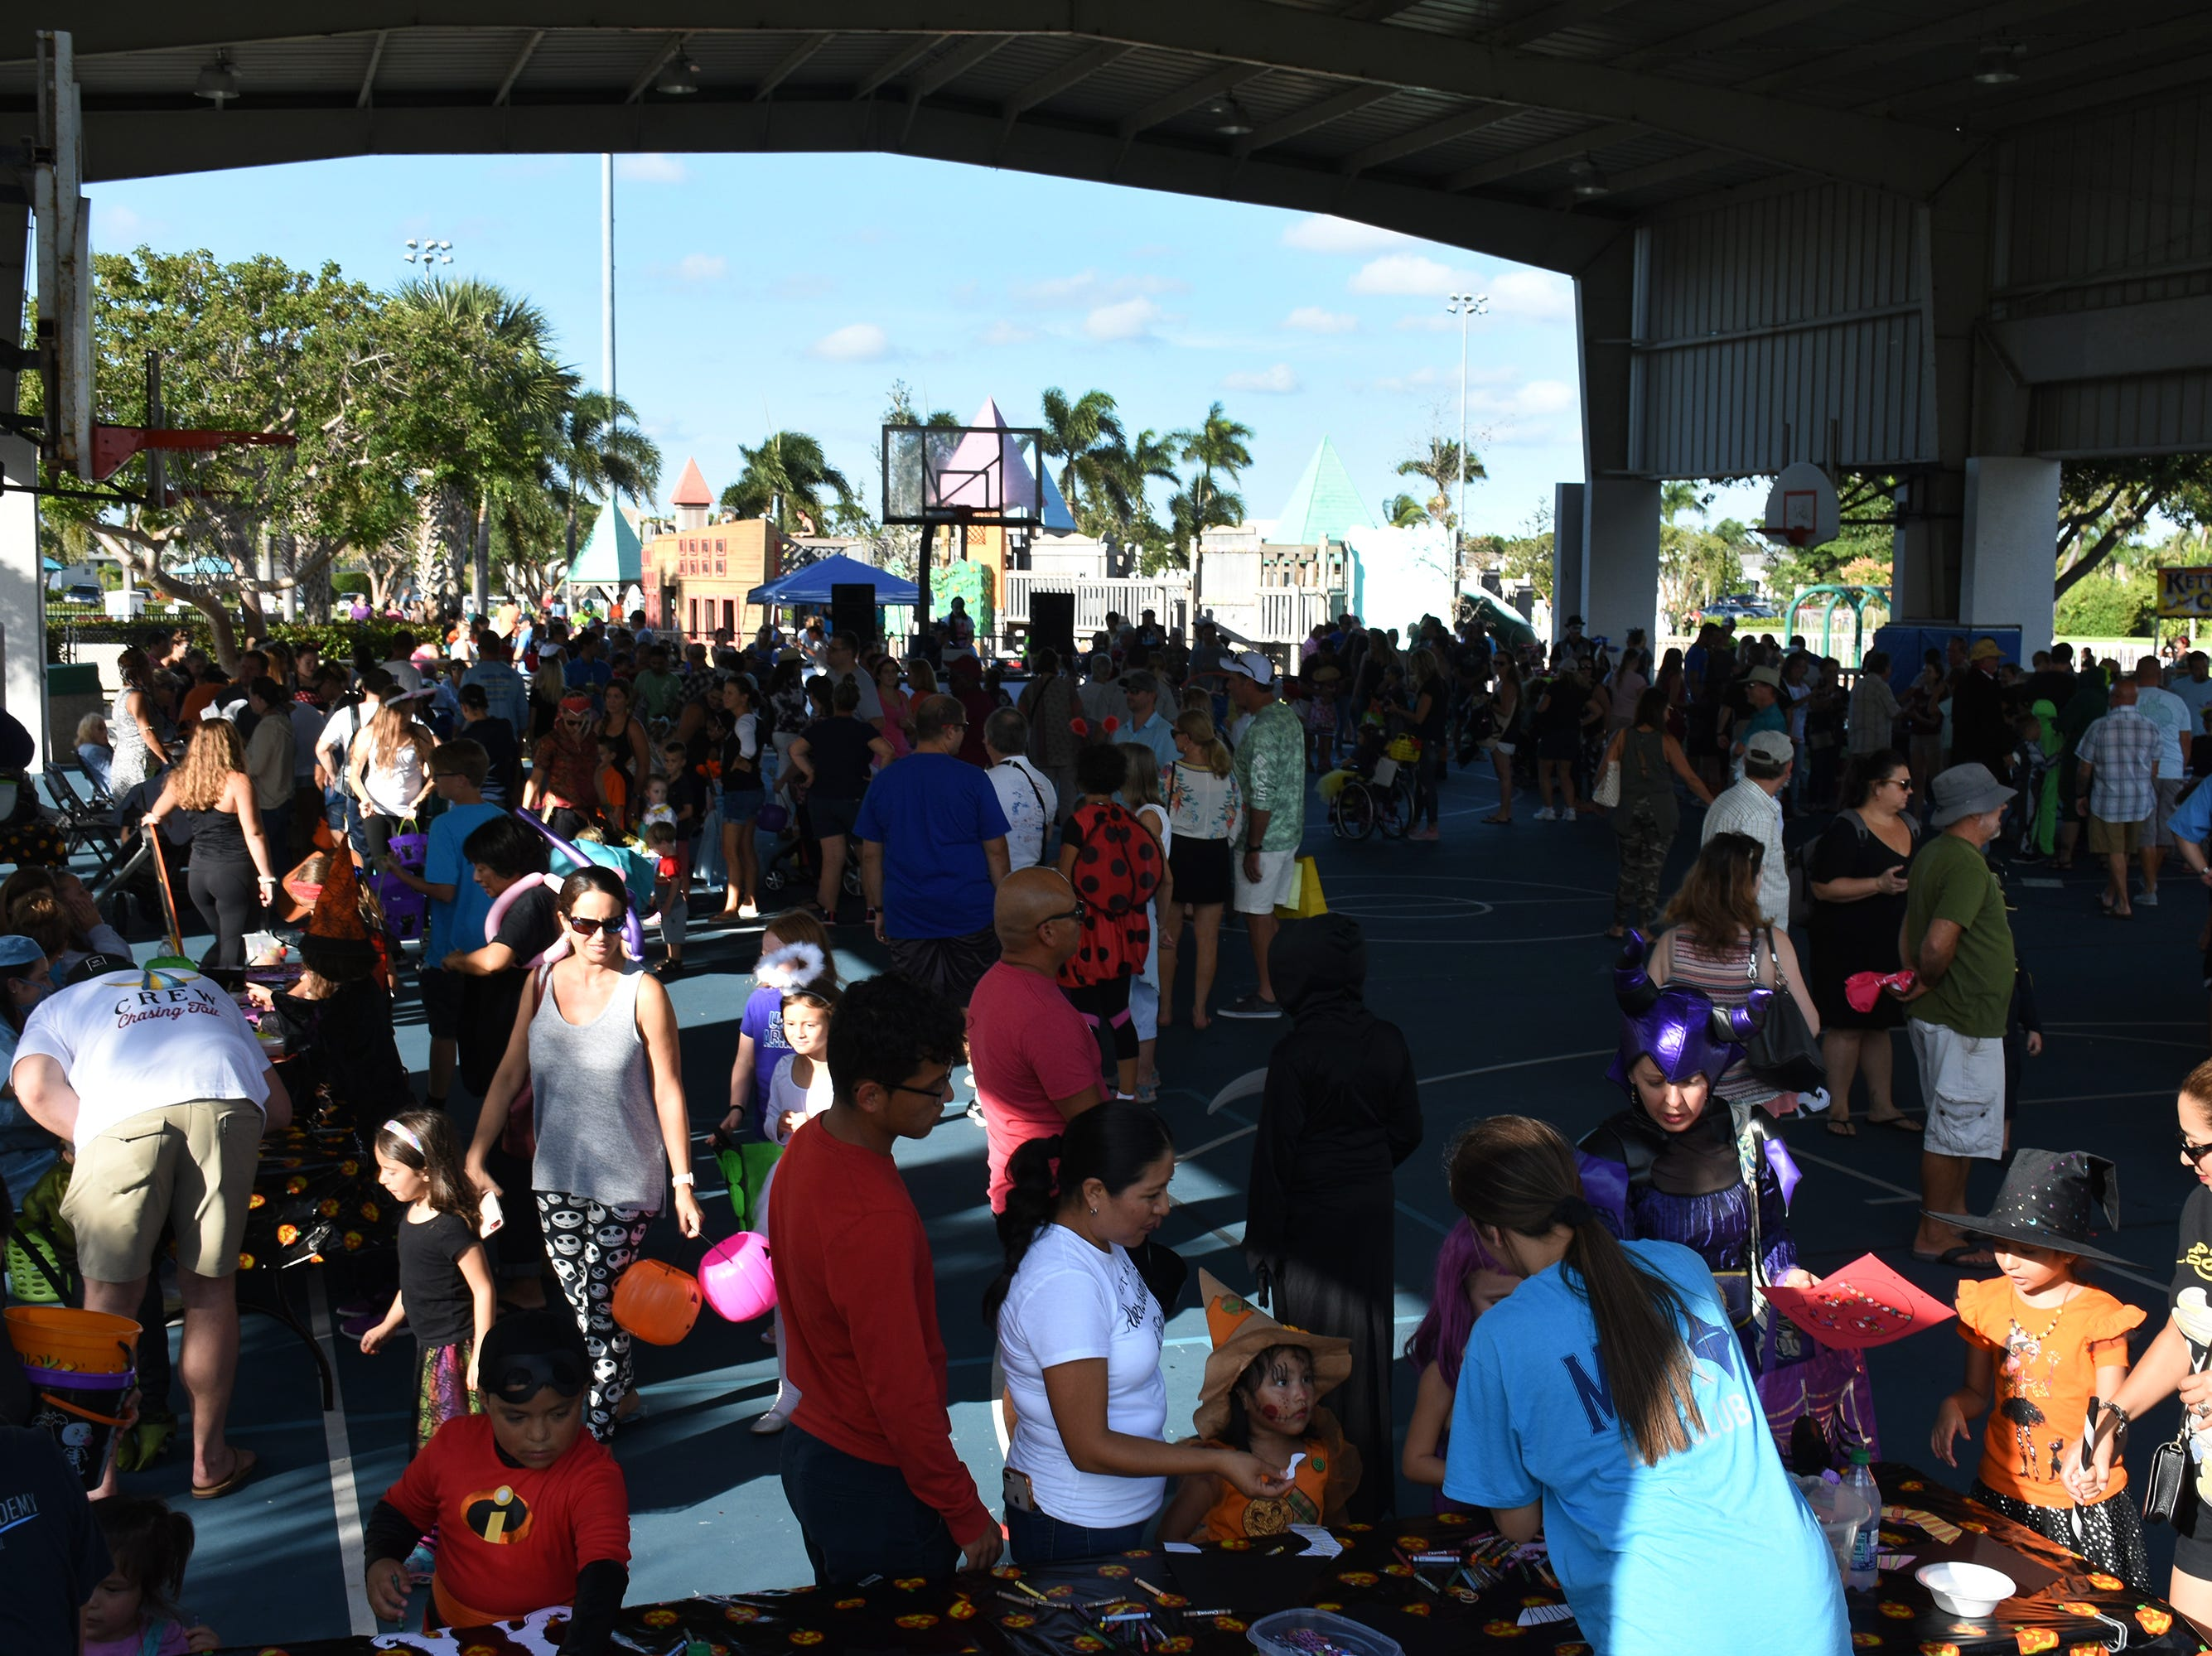 Revelers throng the air-nasium. The Spooktacular, the City of Marco Island's pre-Halloween celebration, returned to Mackle Park's air-nasium on Saturday afternoon, with costumes, games and family fun.